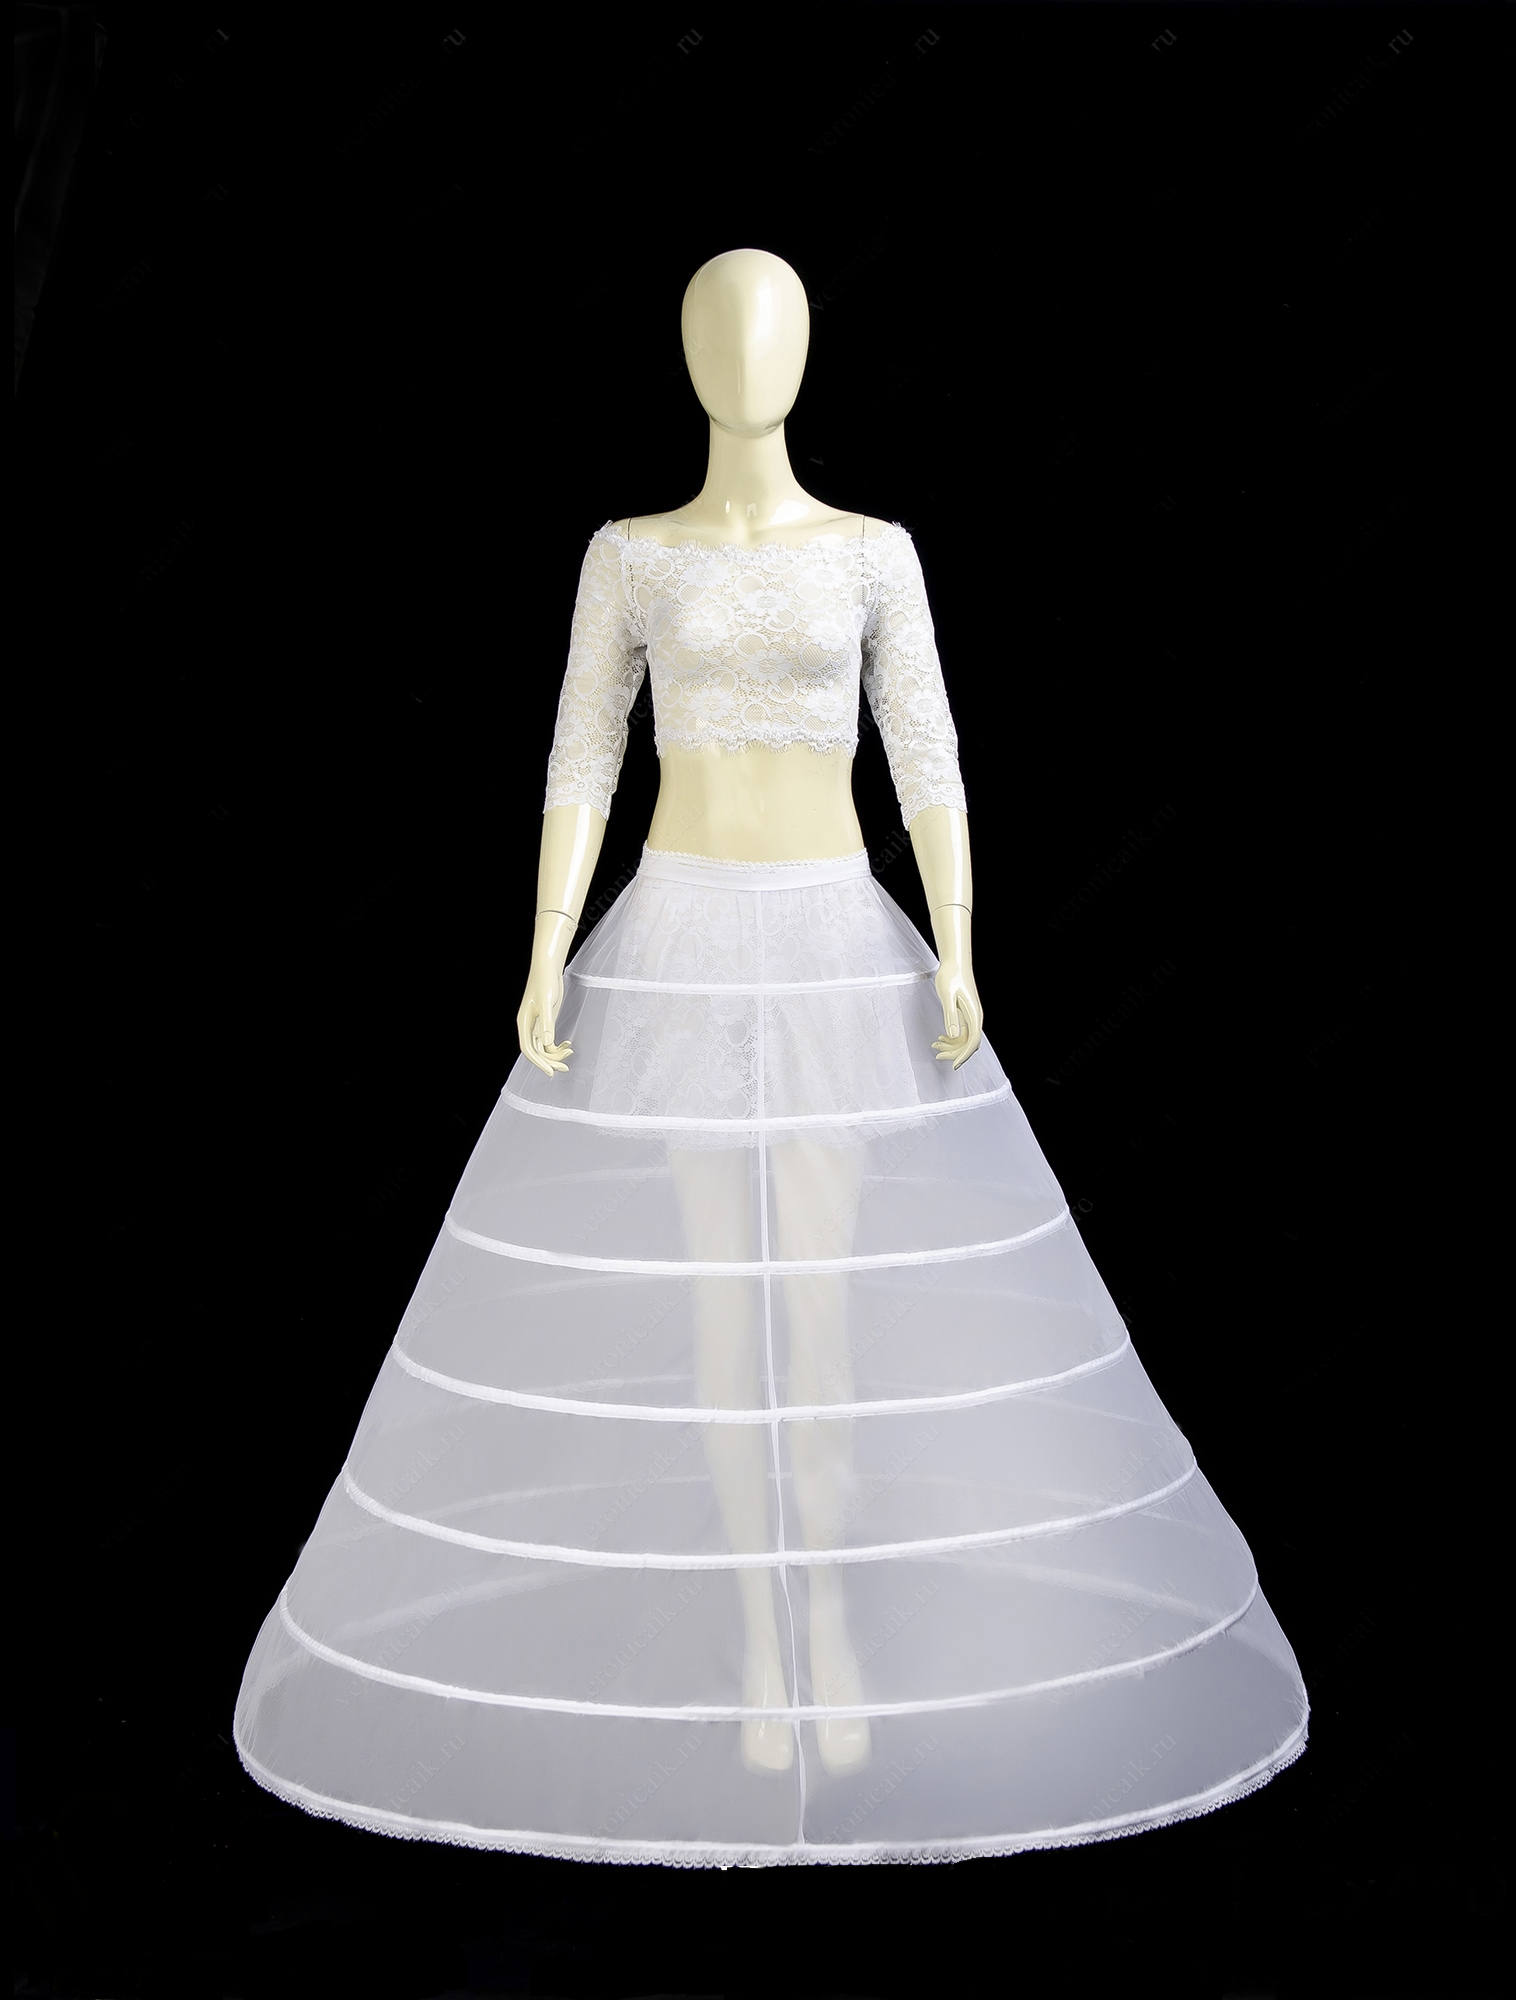 Where to buy a petticoat with rings for a wedding dress Petticoat